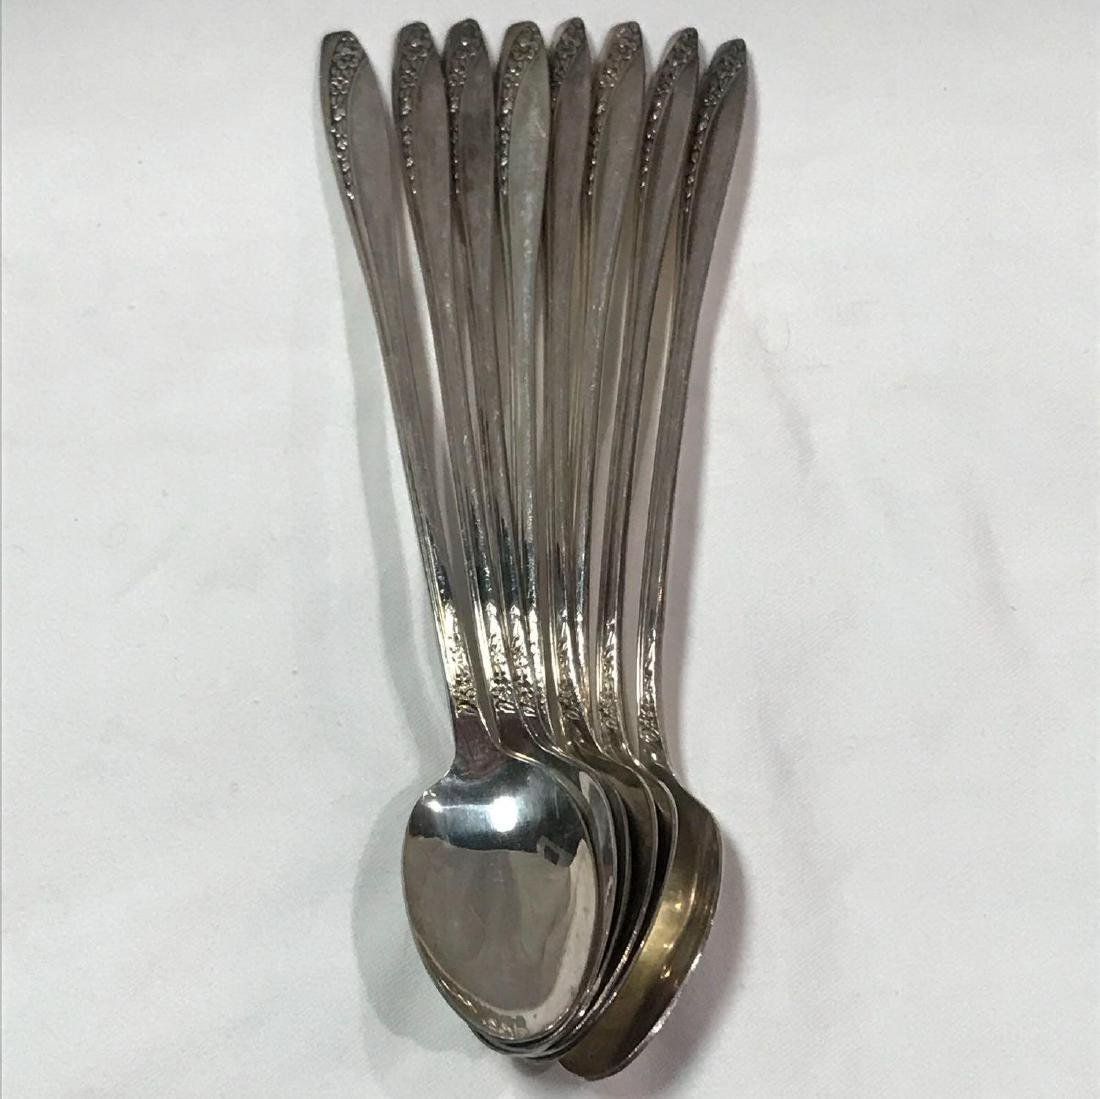 8 Wm Rogers International Silver Iced Tea Spoons